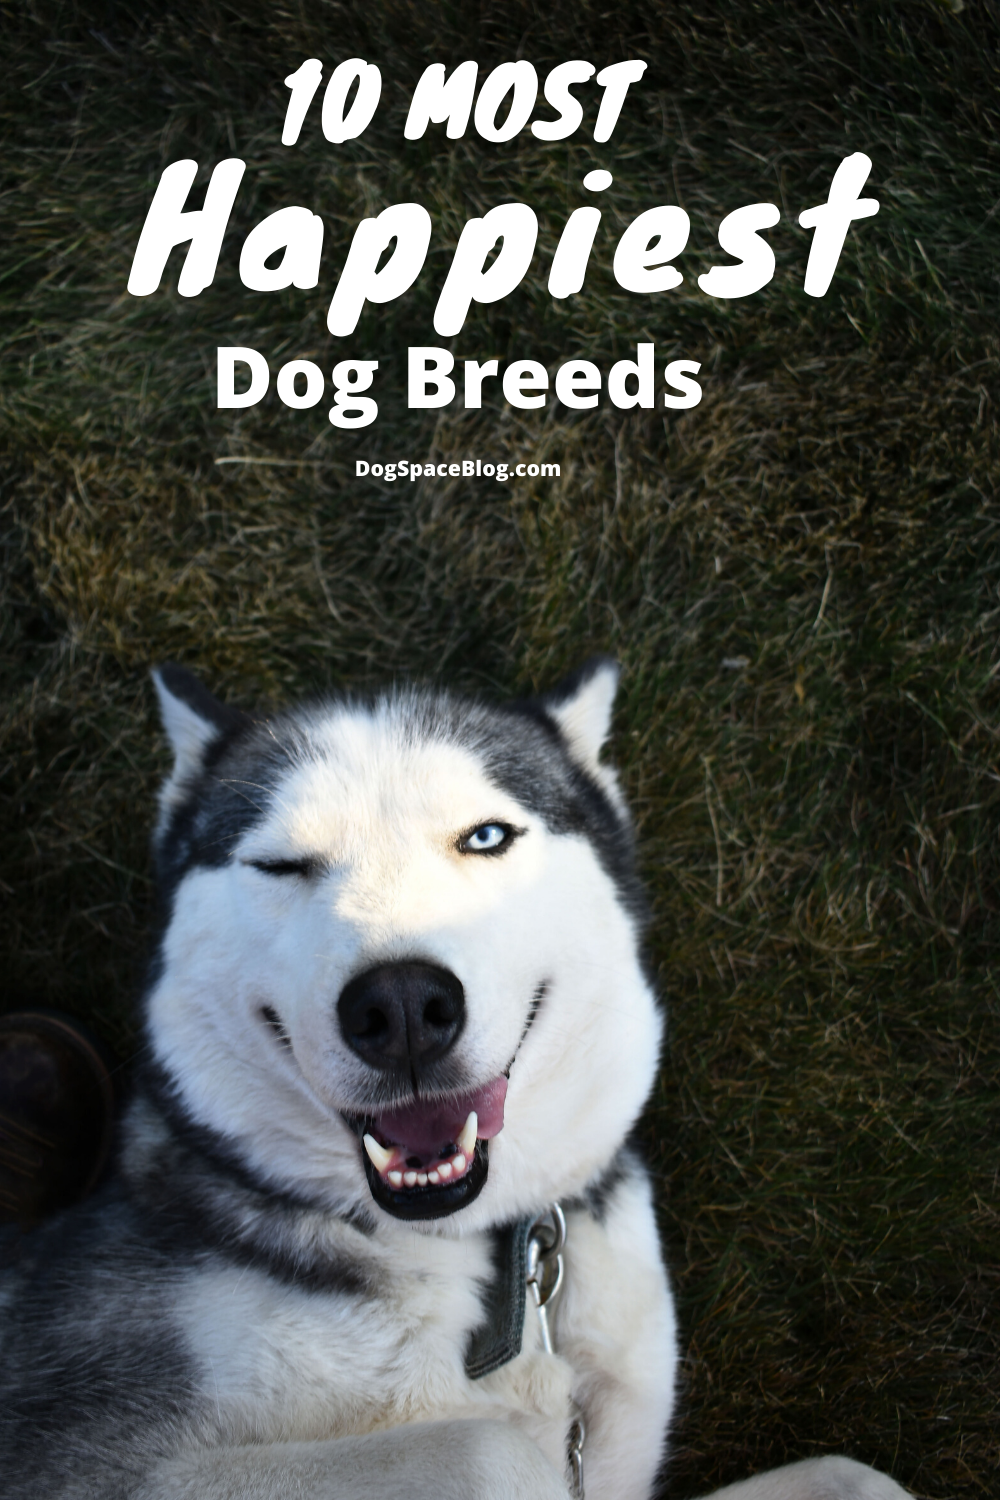 Top 10 Happiest Dog Breeds Happy dogs, Dogs, Dog breeds